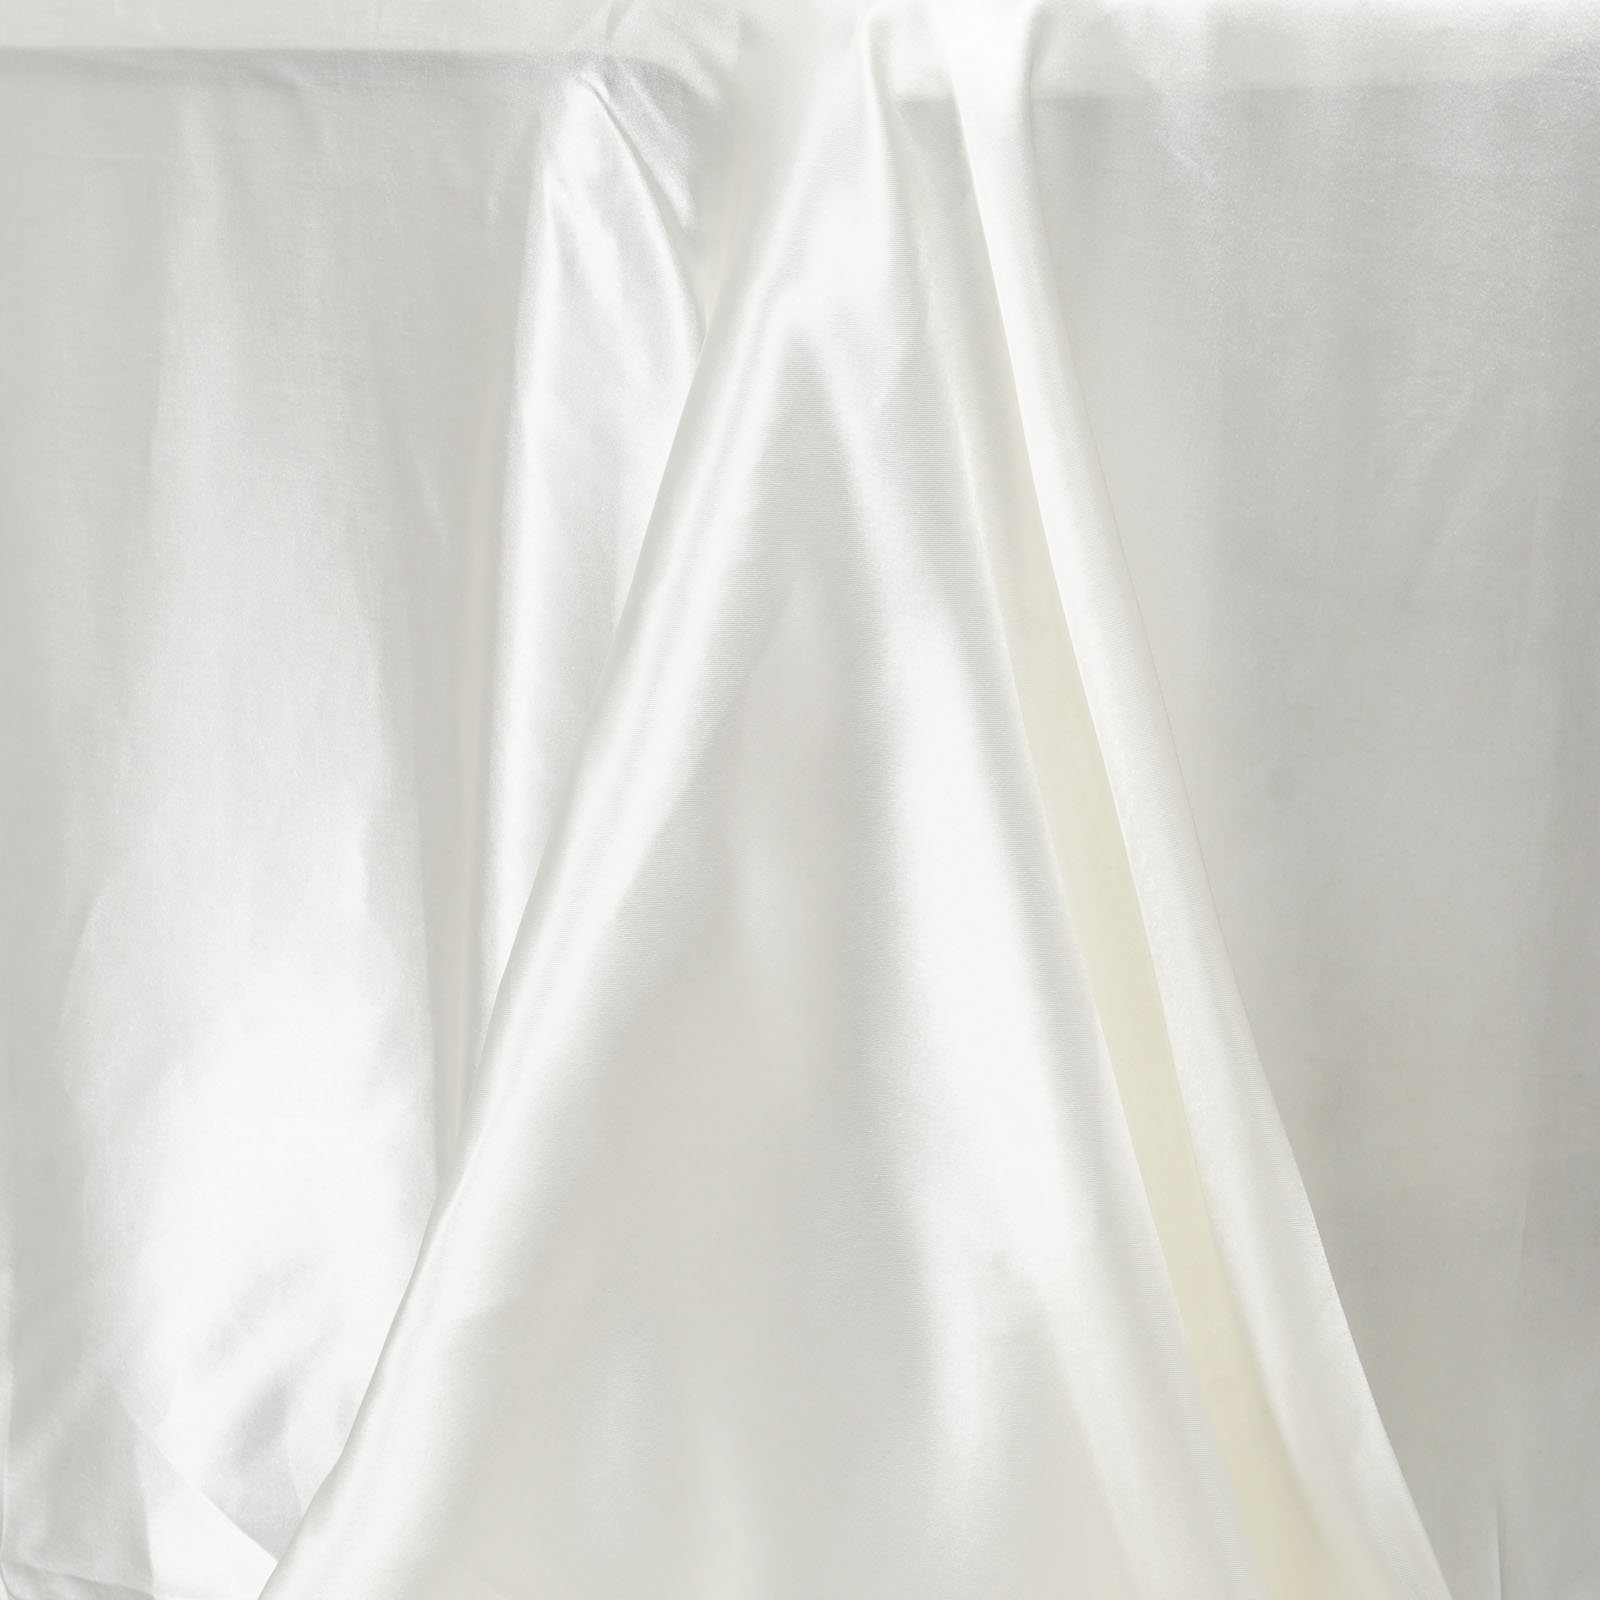 90x132-034-Rectangle-Satin-Tablecloth-For-Wedding-Party-Banquet-Events-Decoration thumbnail 49